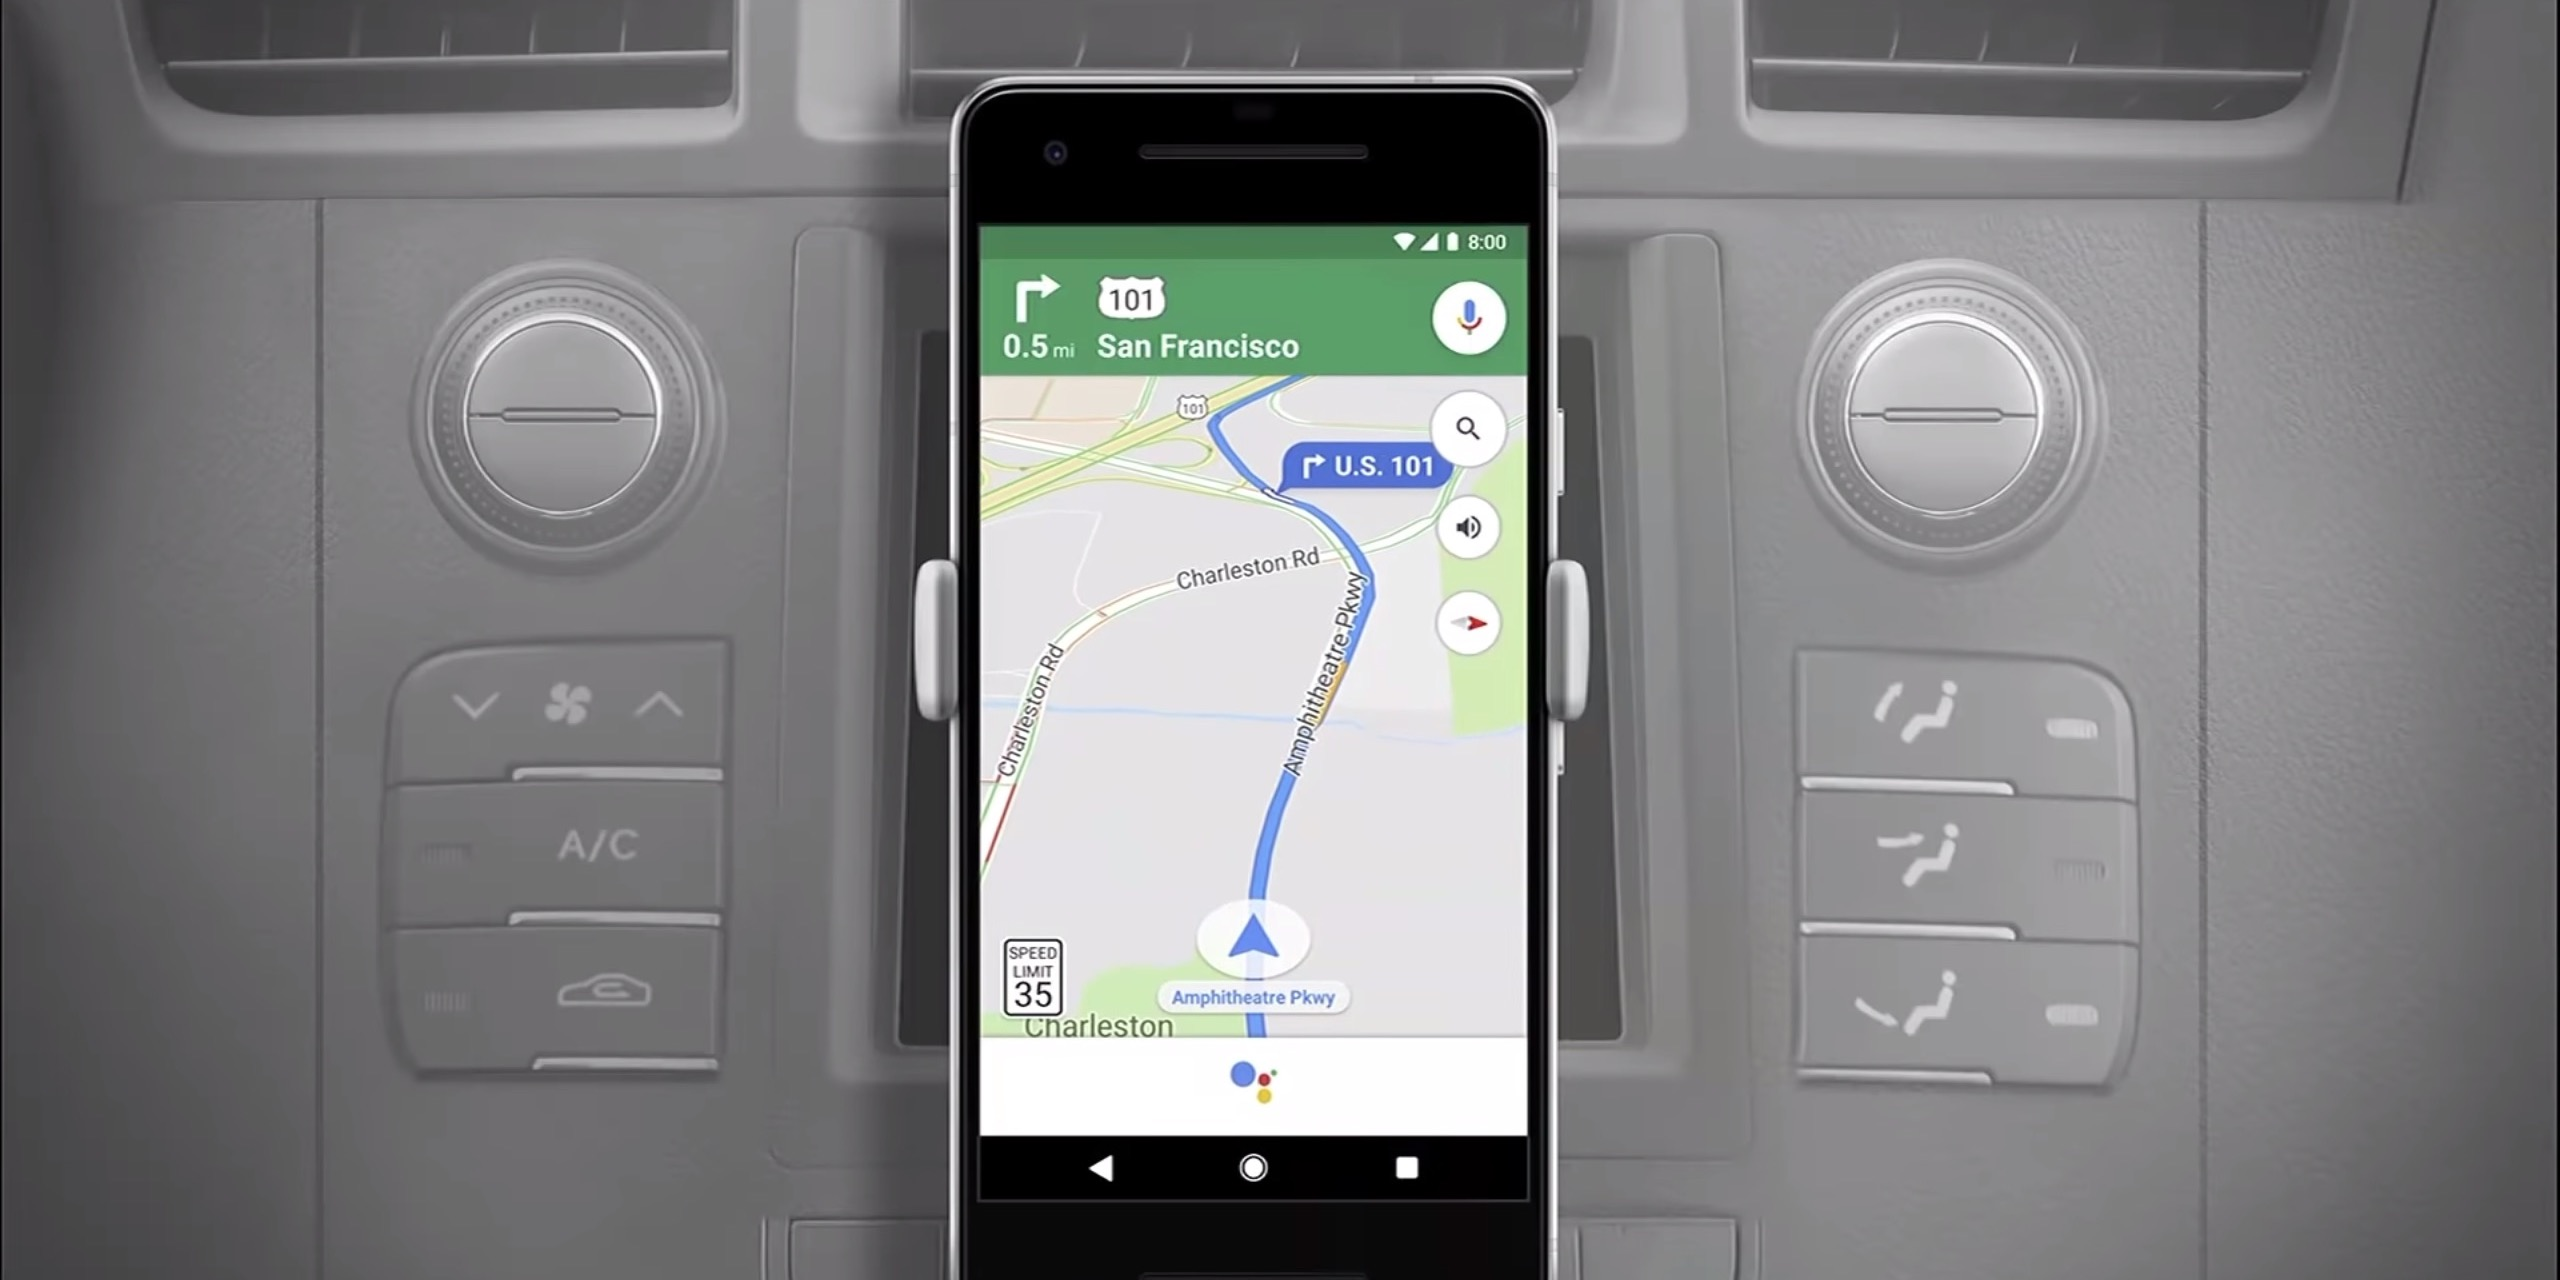 Google Assistant Maps navigation